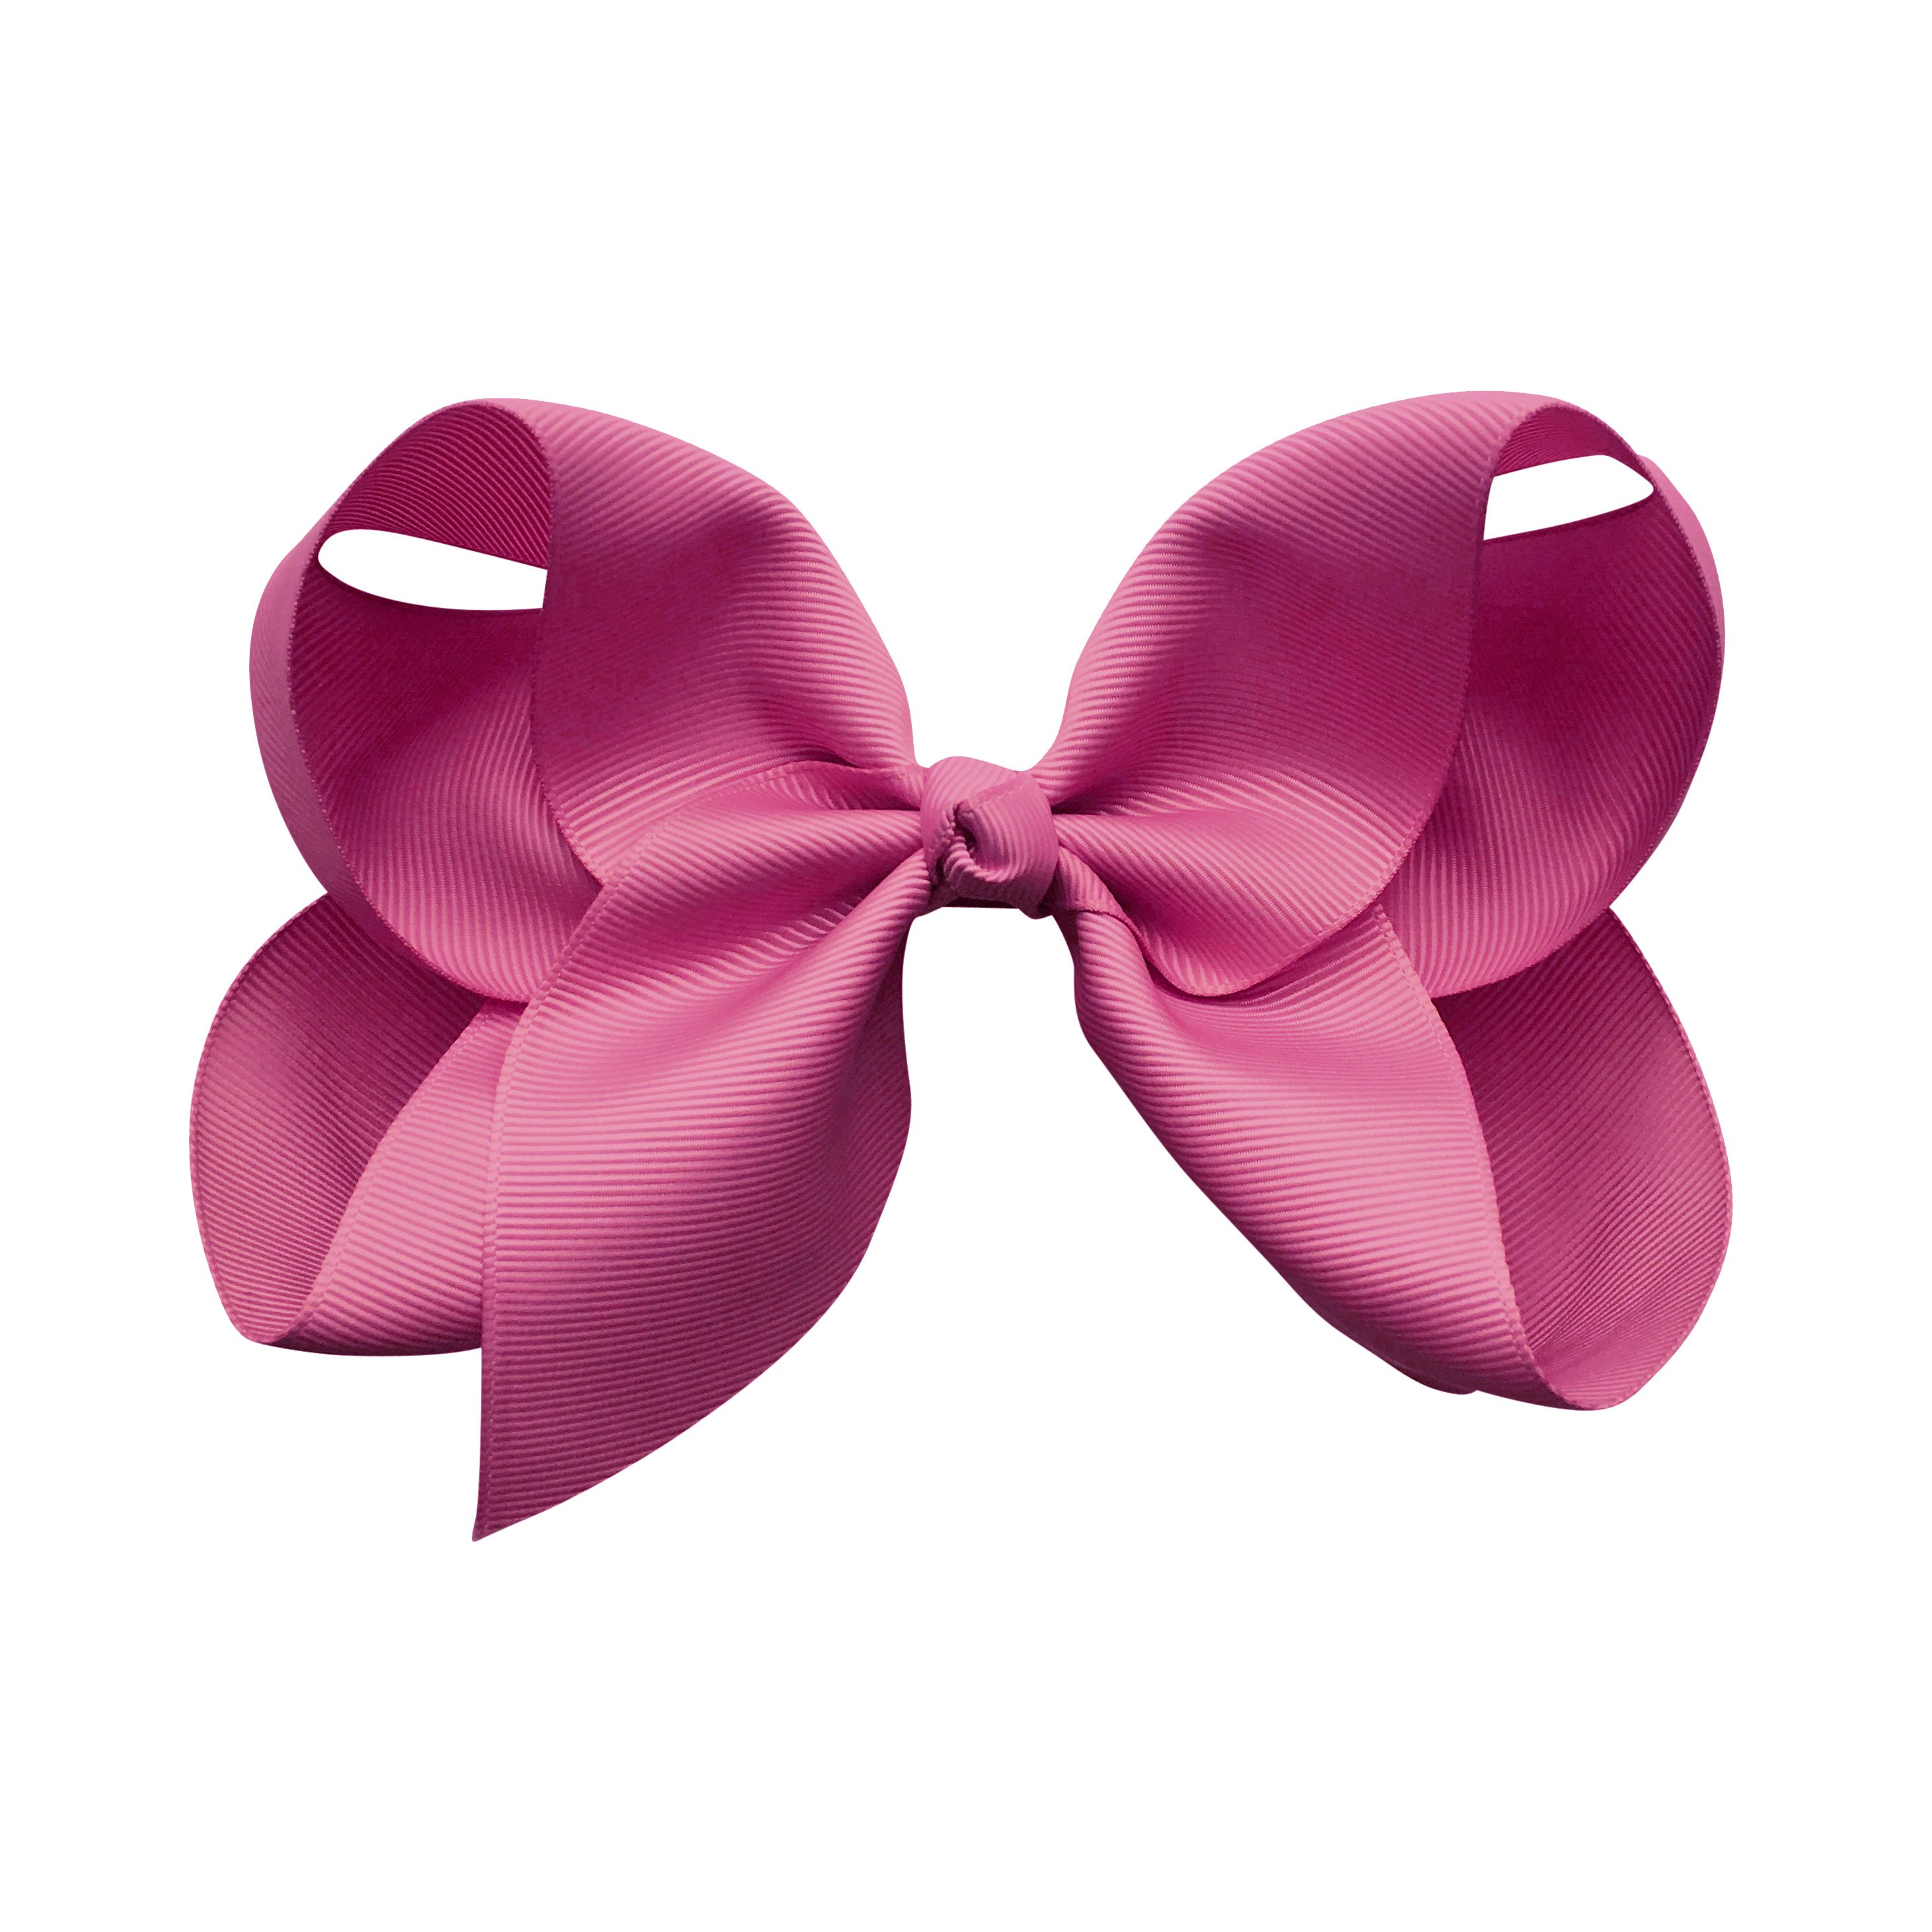 Image of Jumbo Boutique Bow - alligator clip - raspberry rose